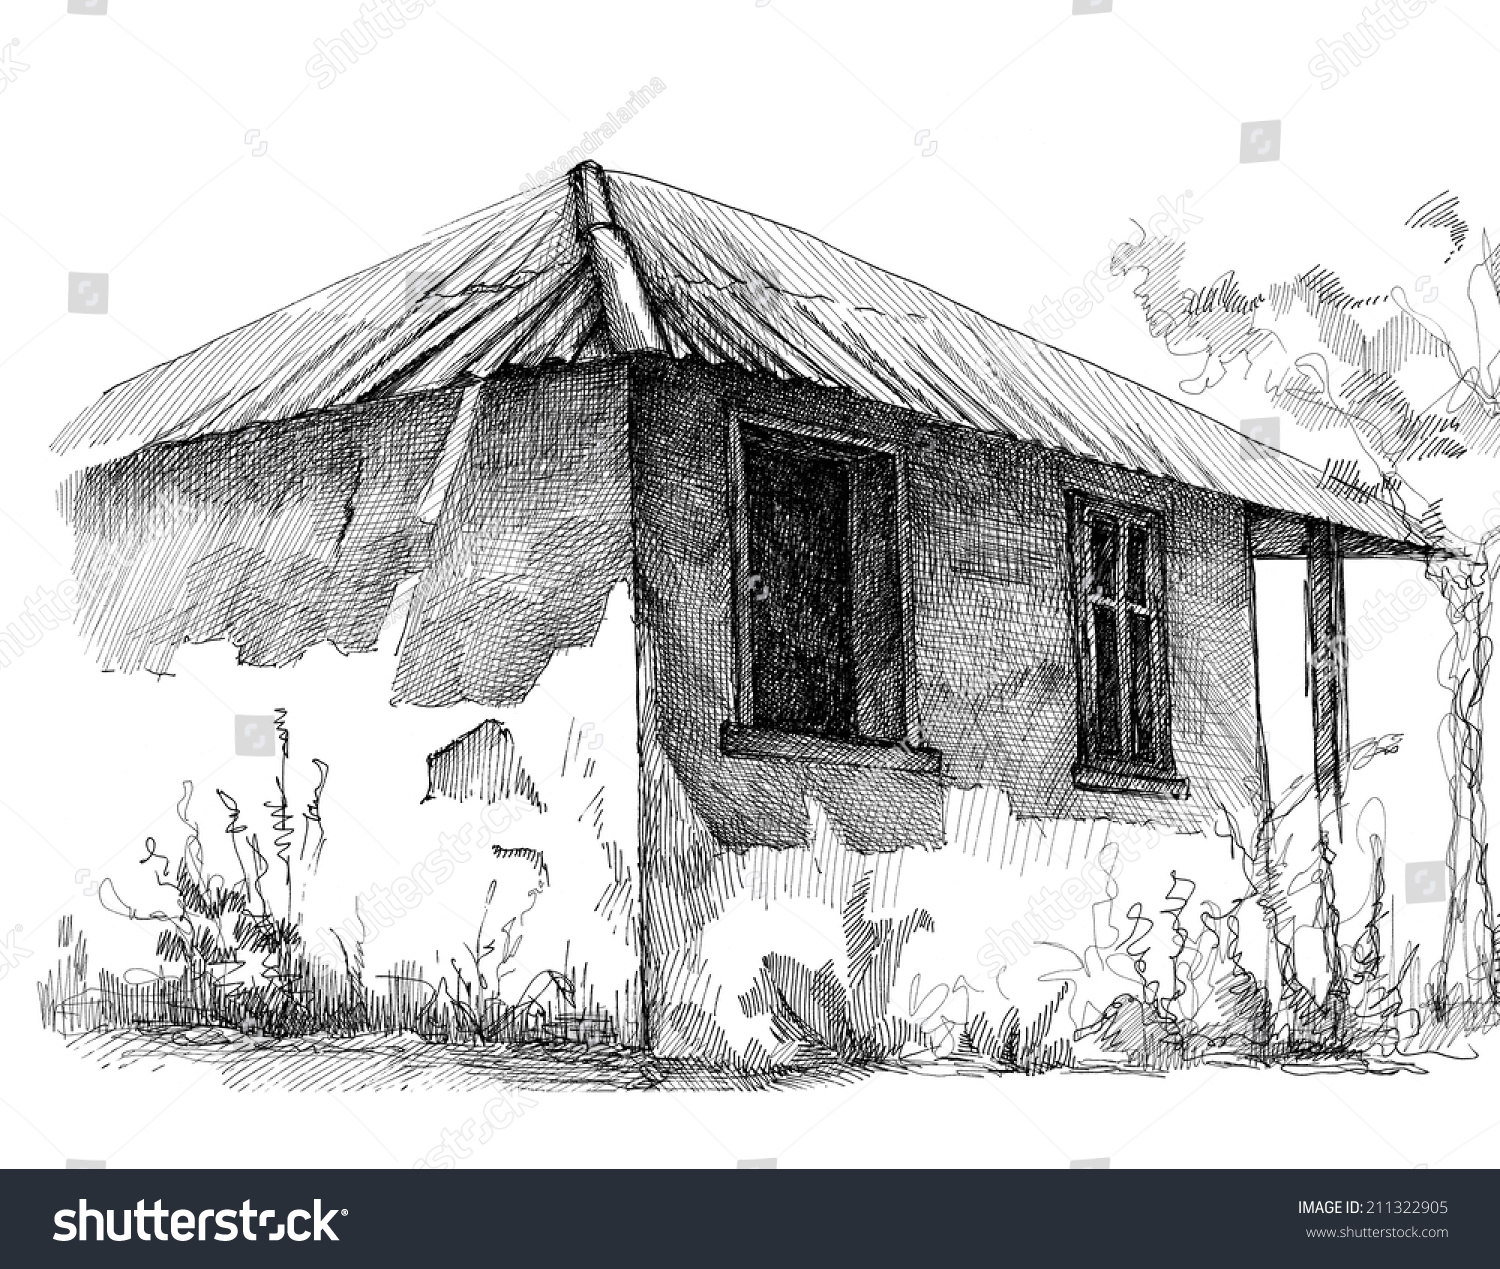 Pencil drawing of a village house pencil drawing of an old rural house